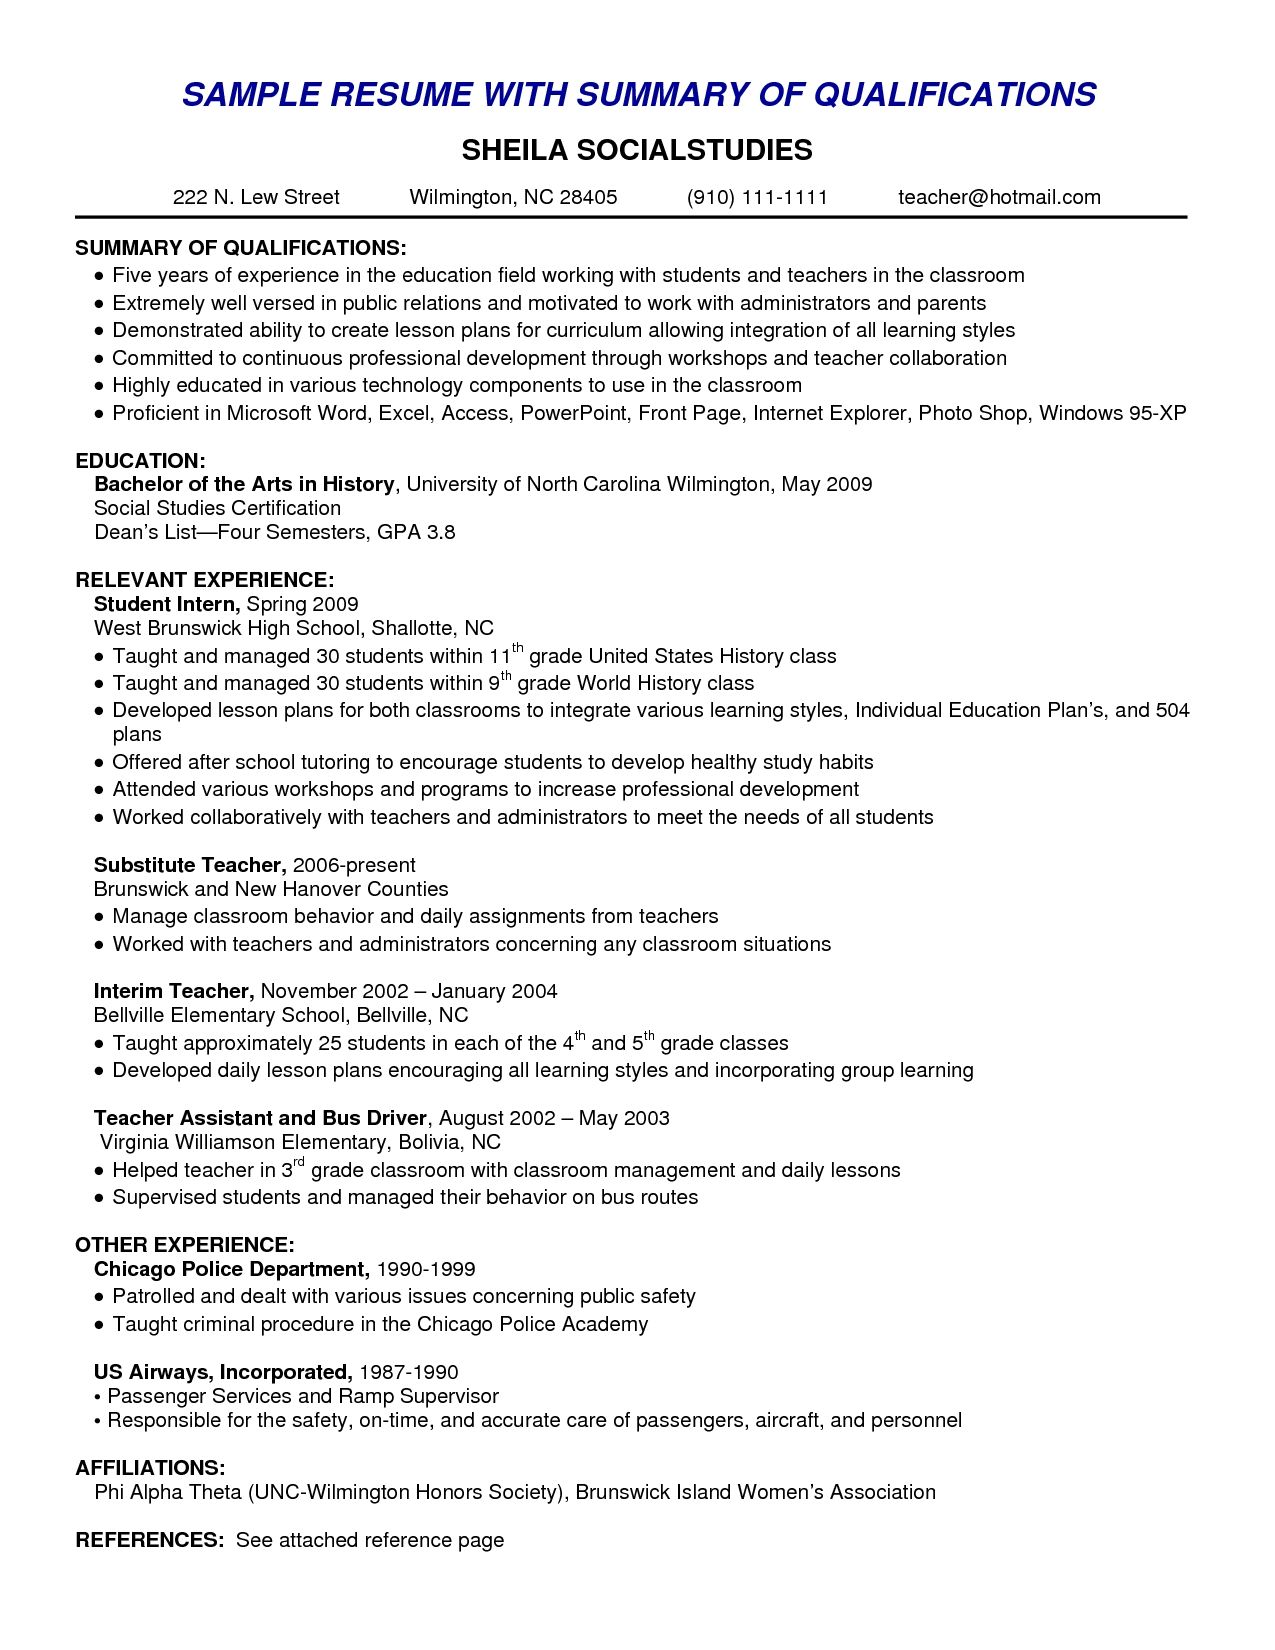 Summary For Resume Example Resume Skills Summary Examples Example Of Skills Summary For